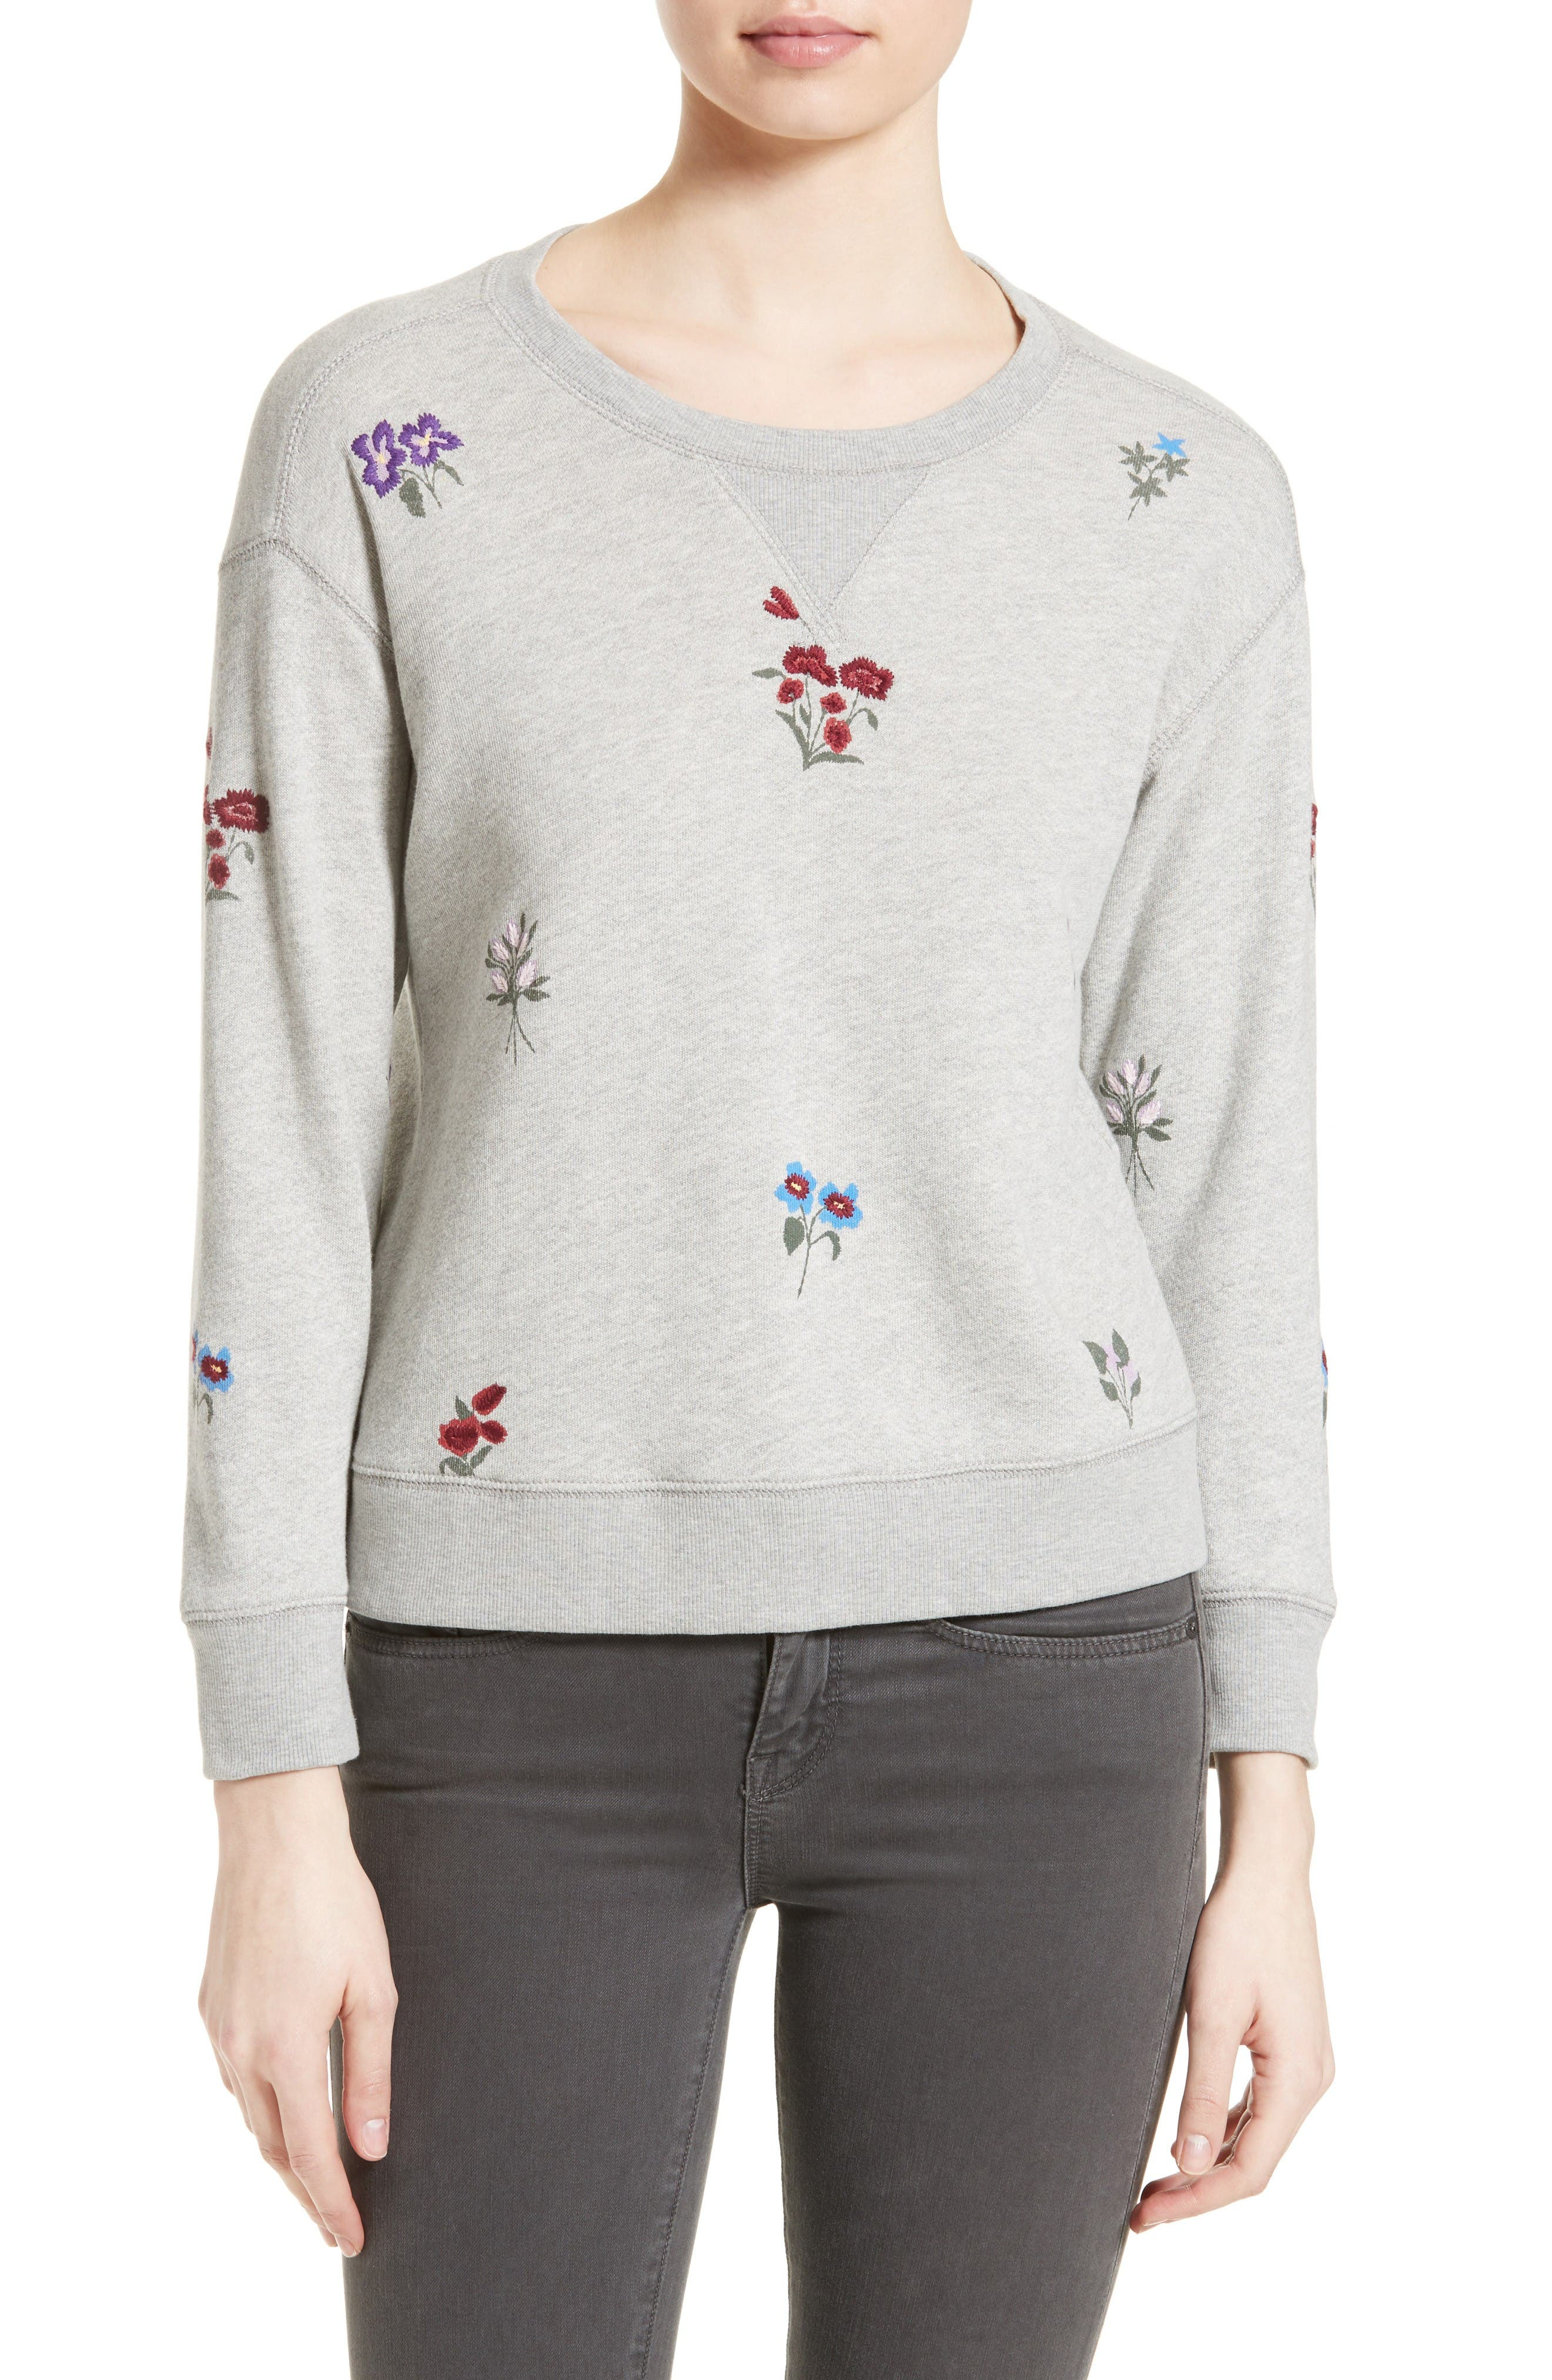 Soft Joie Rikke B Embroidered Sweatshirt